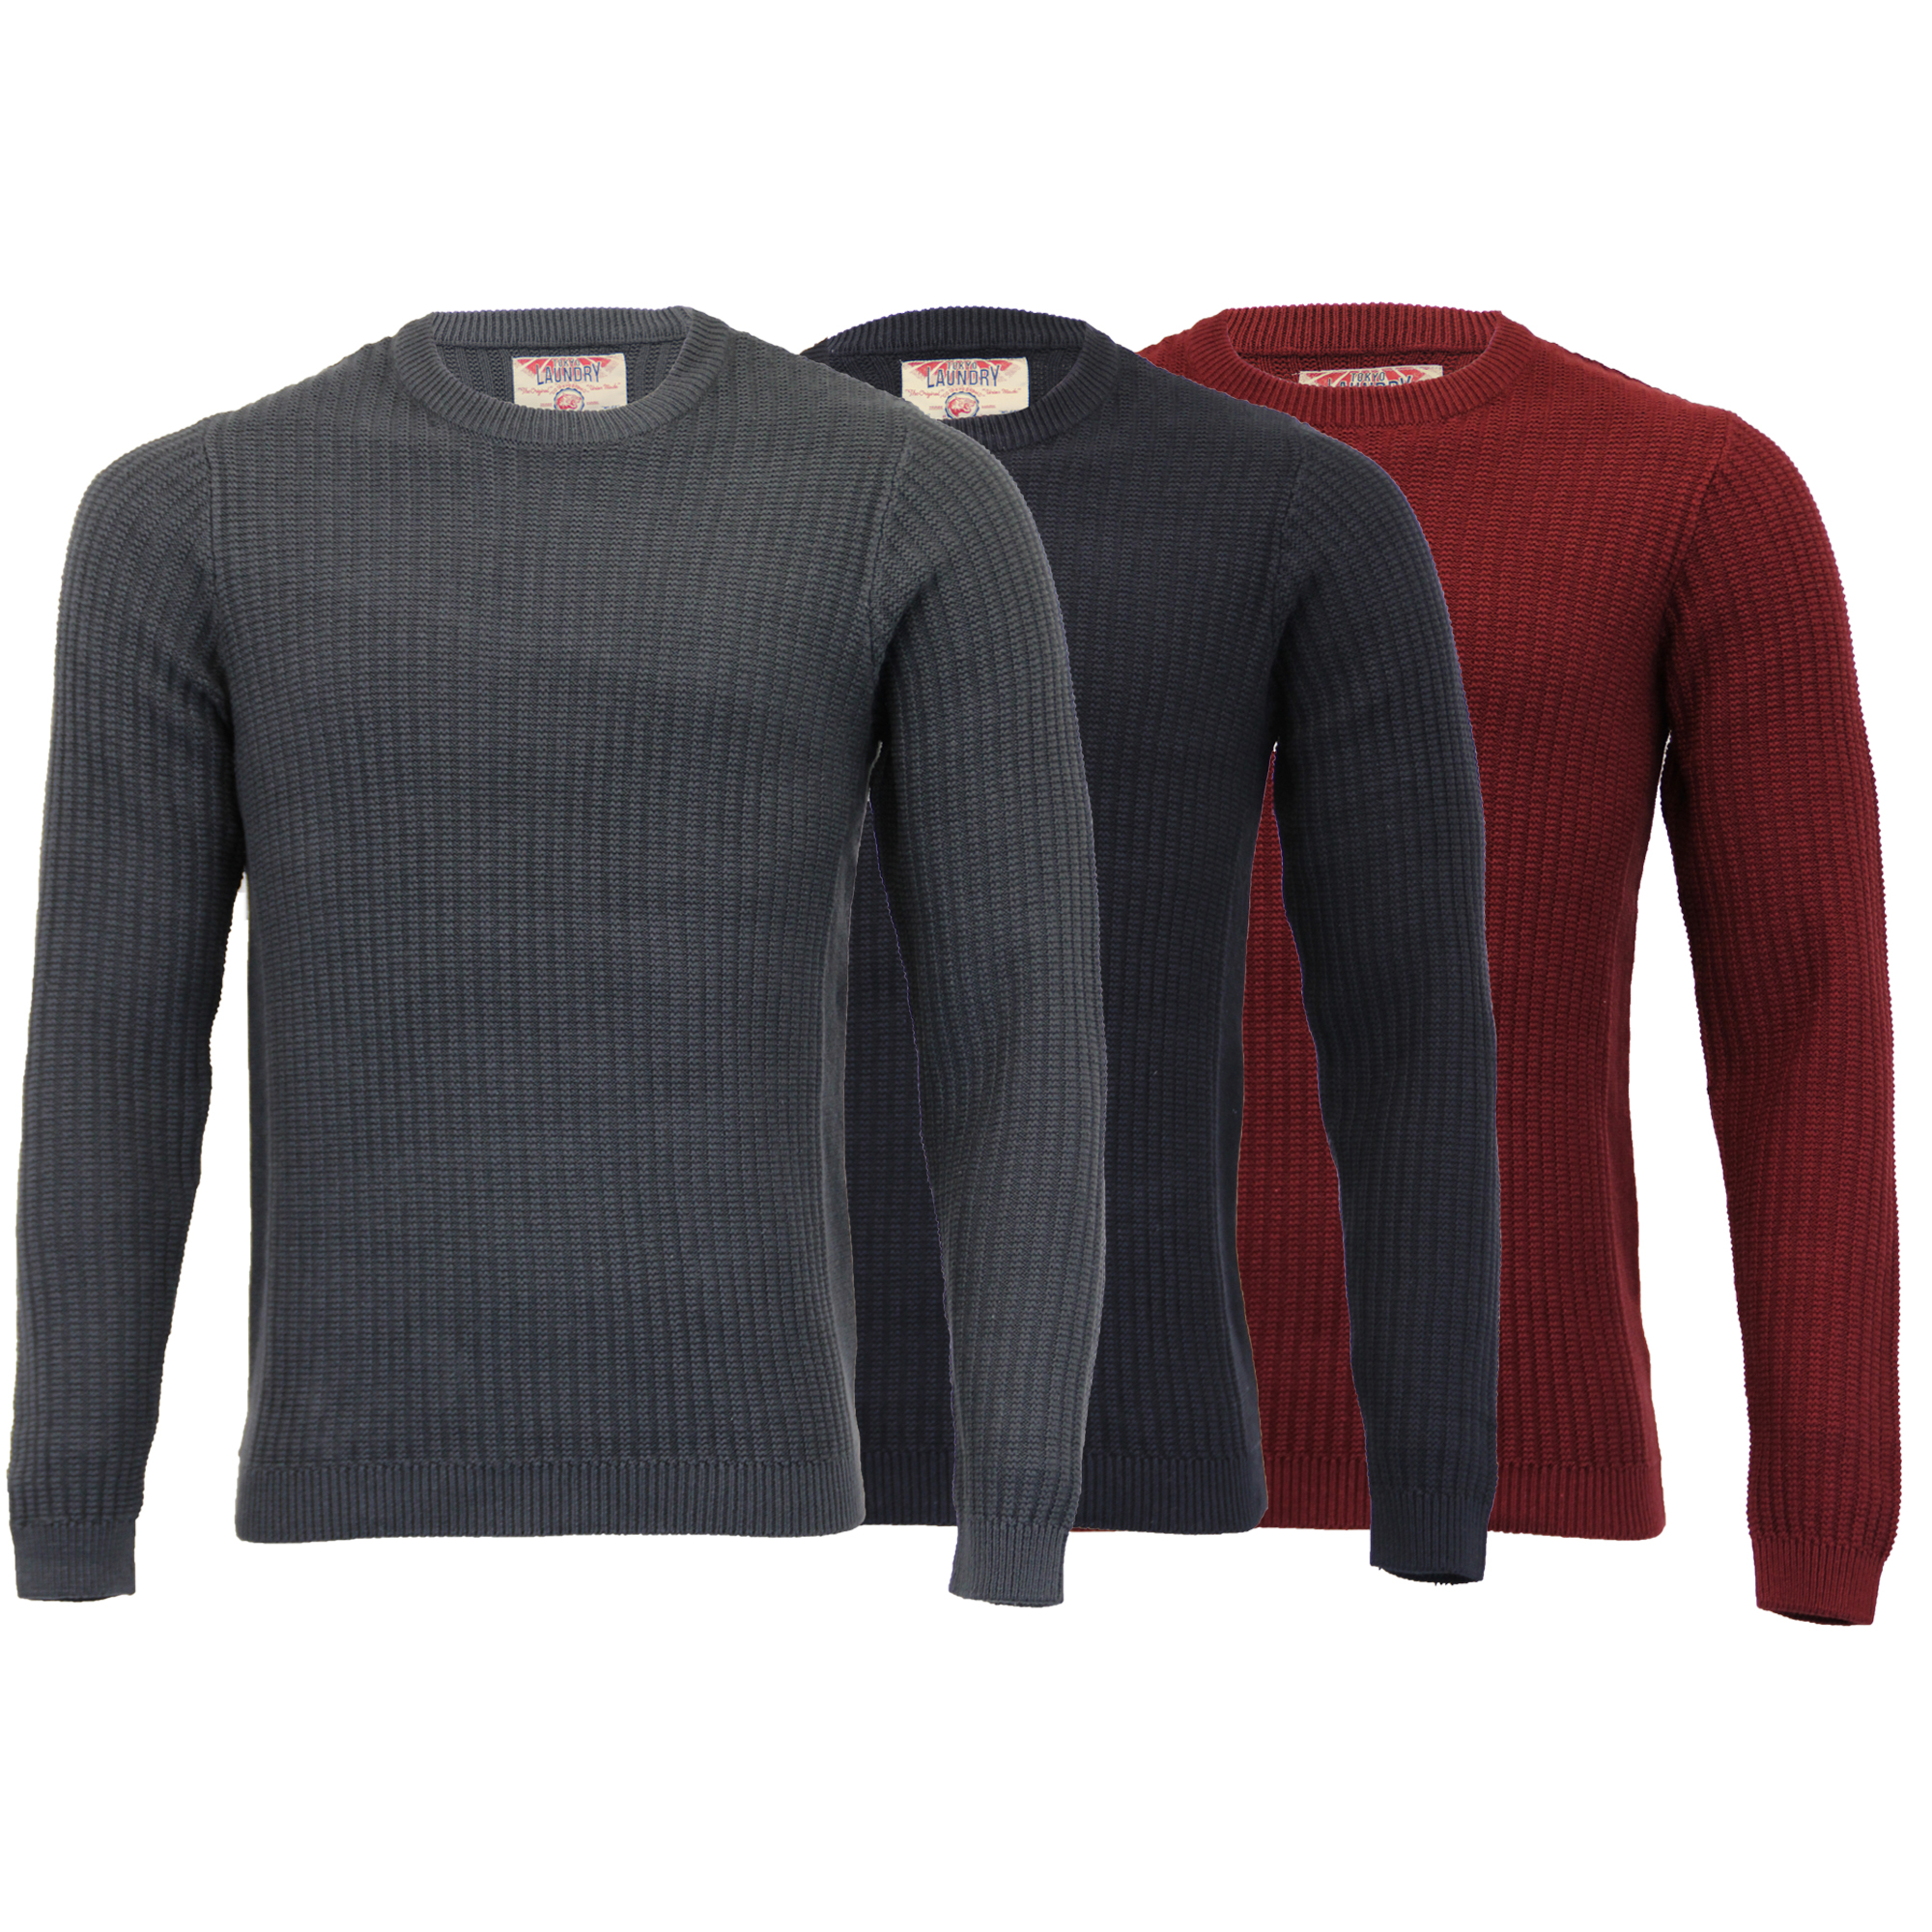 Mens-Knitted-Jumper-Tokyo-Laundry-Ribbed-Sweater-Pullover-Top-Crew-Neck-Winter thumbnail 4